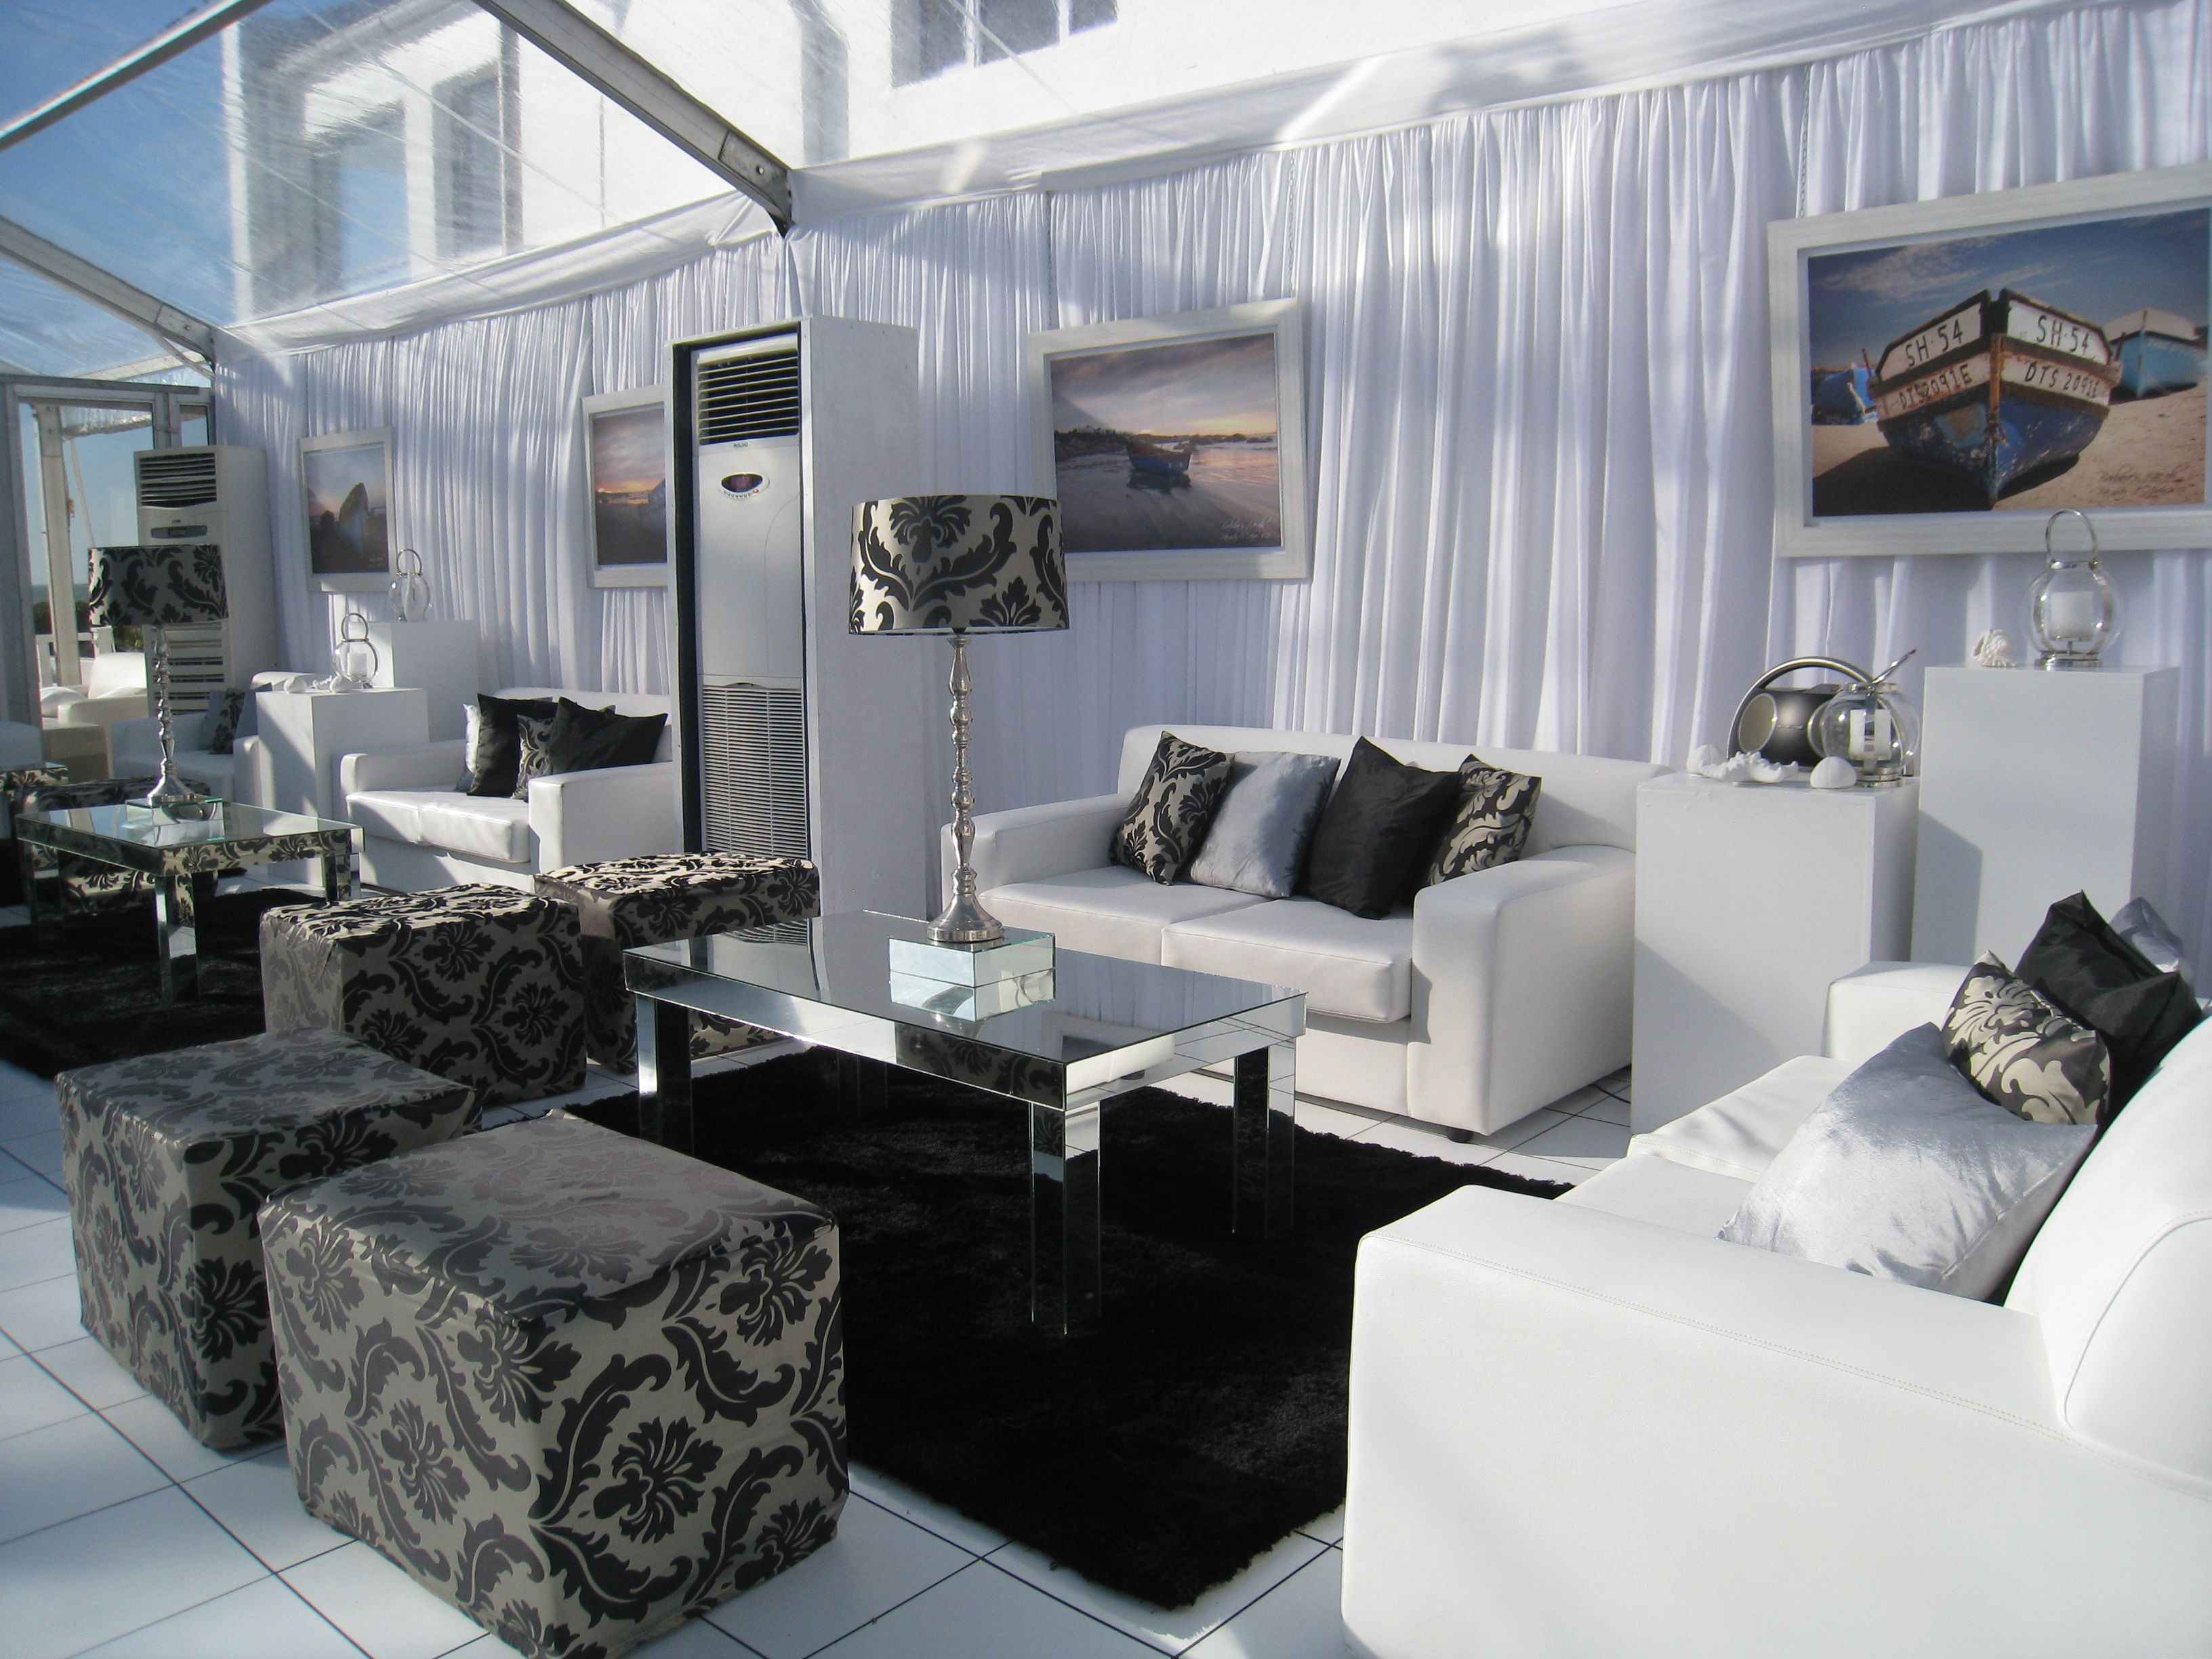 Chattels Clear Marquee Lounge Set Up Paternoster Cape Town